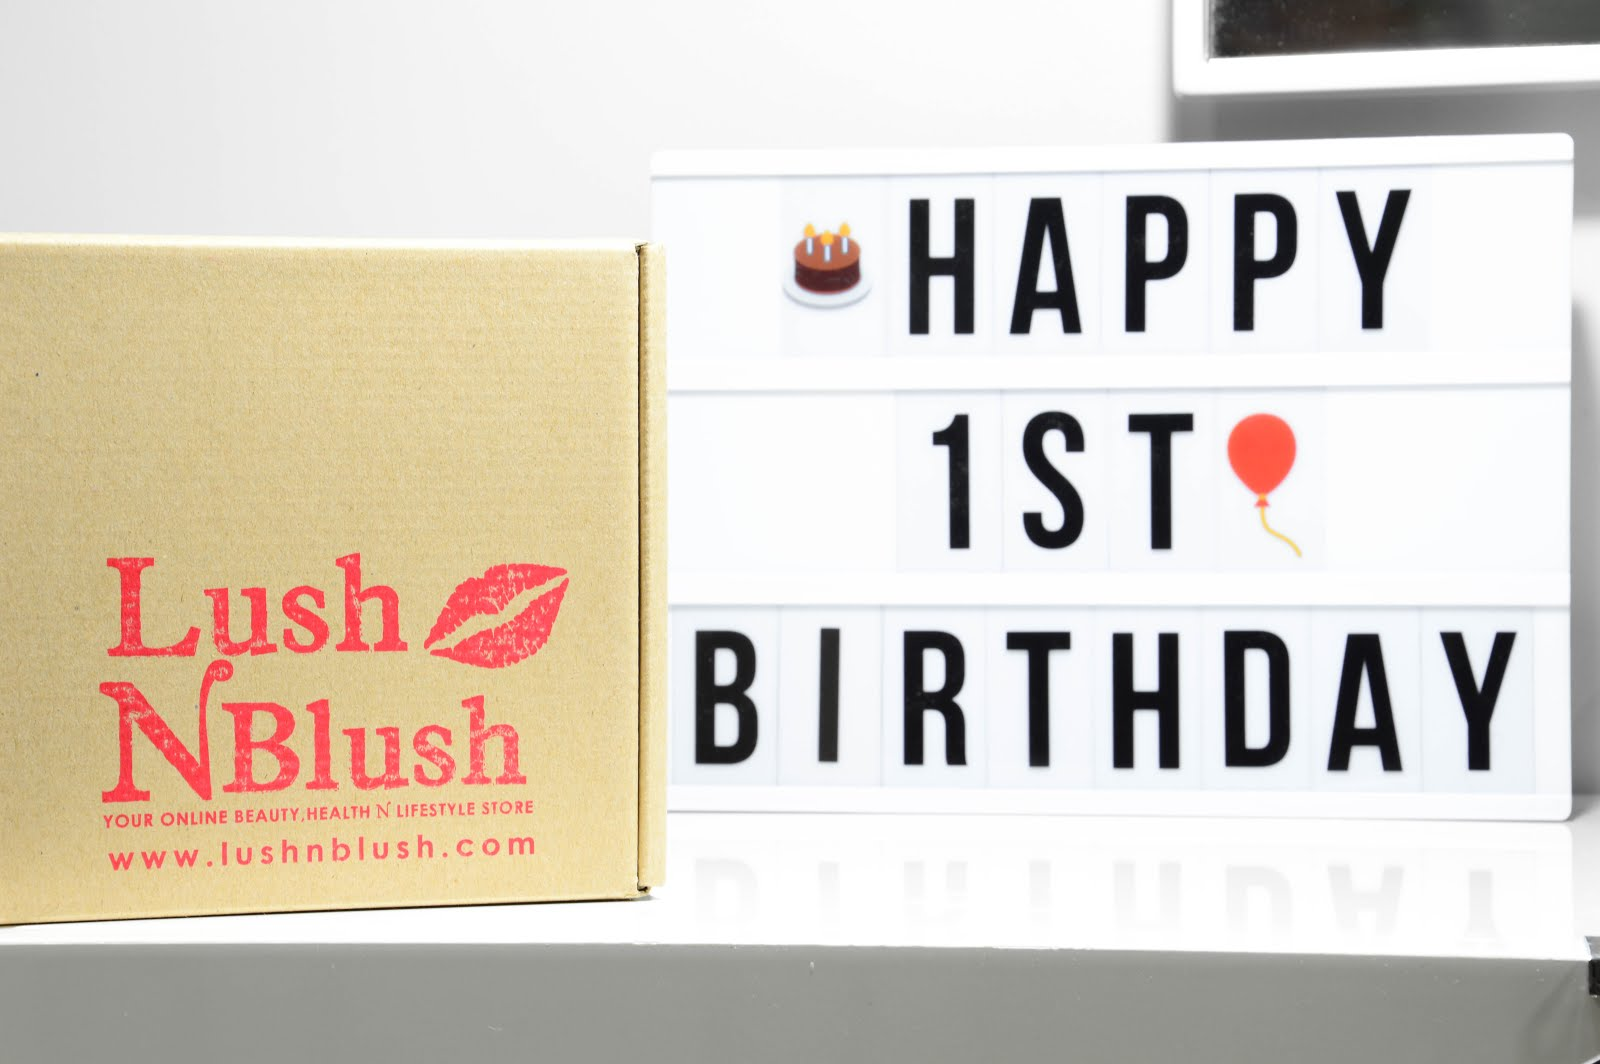 lush n blush birthday sale